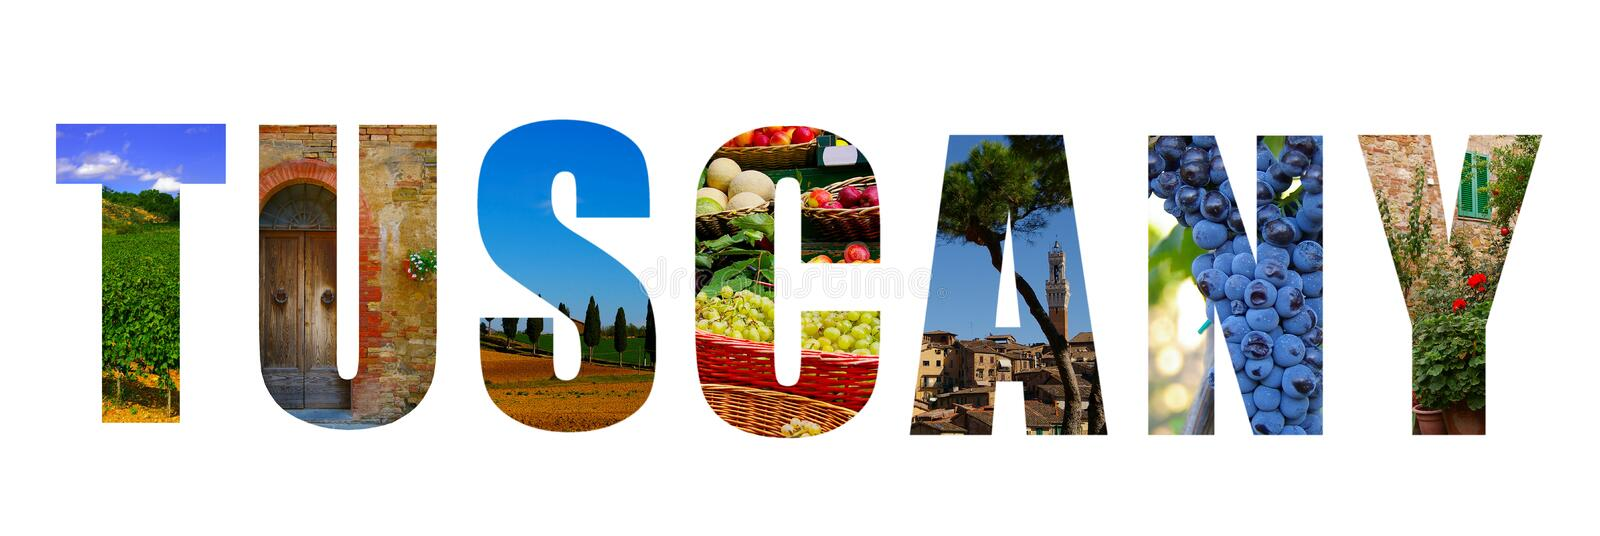 Tuscany Italy collage stock photo